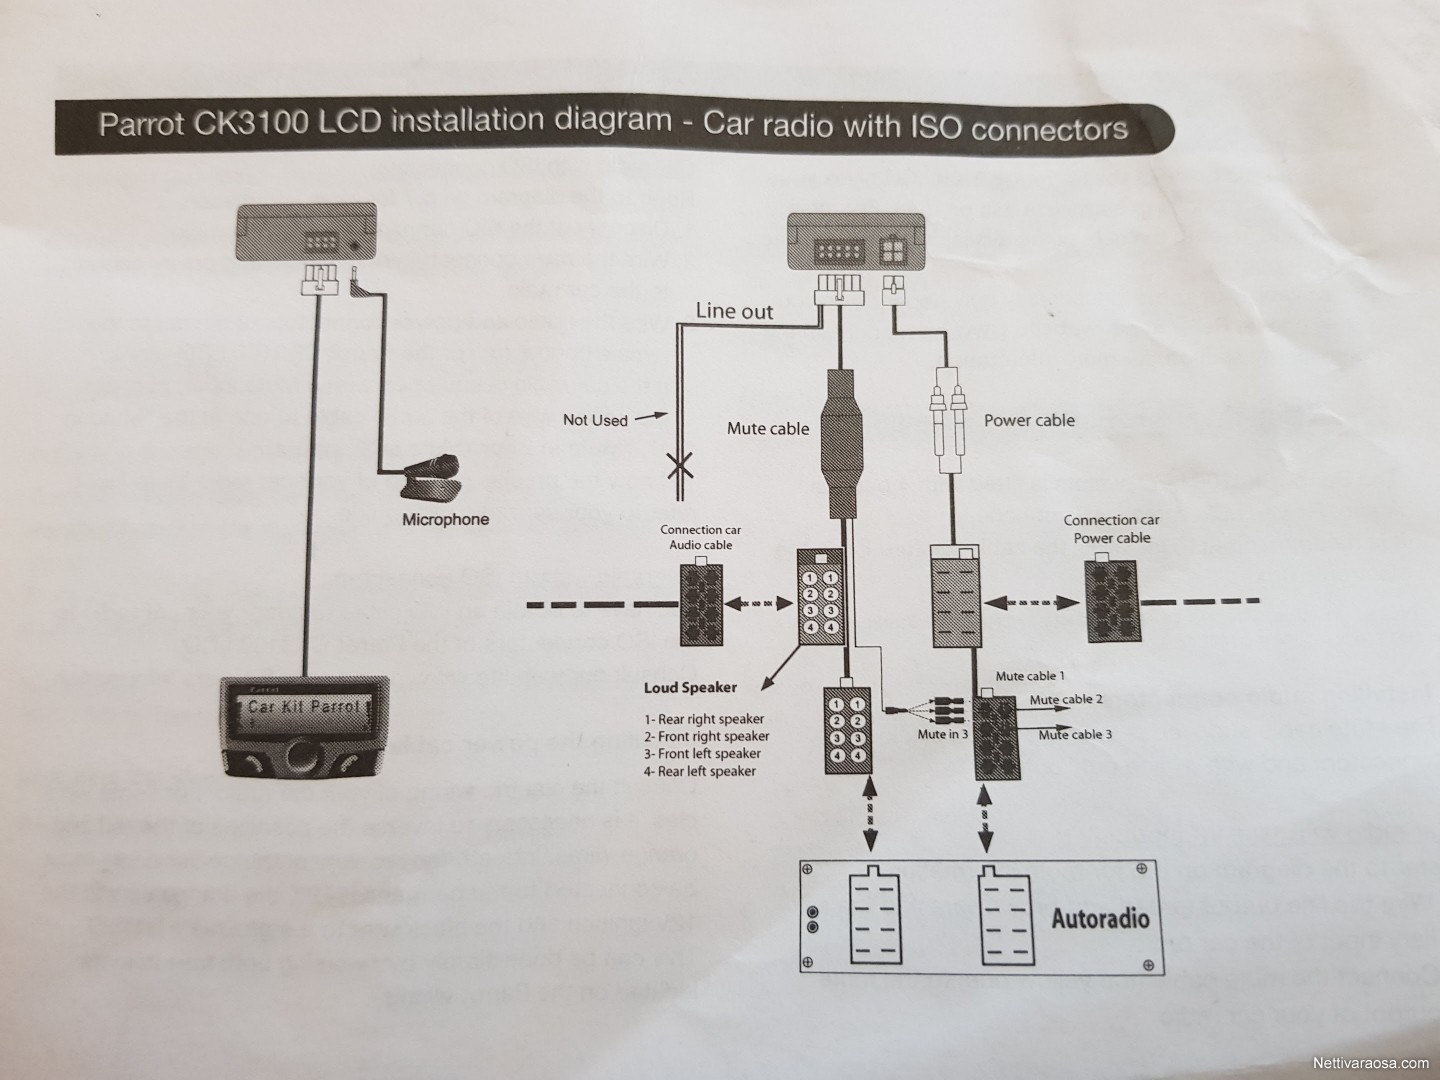 Contemporary Wiring Diagram For Parrot Ck3100 Photos - Best Images ...